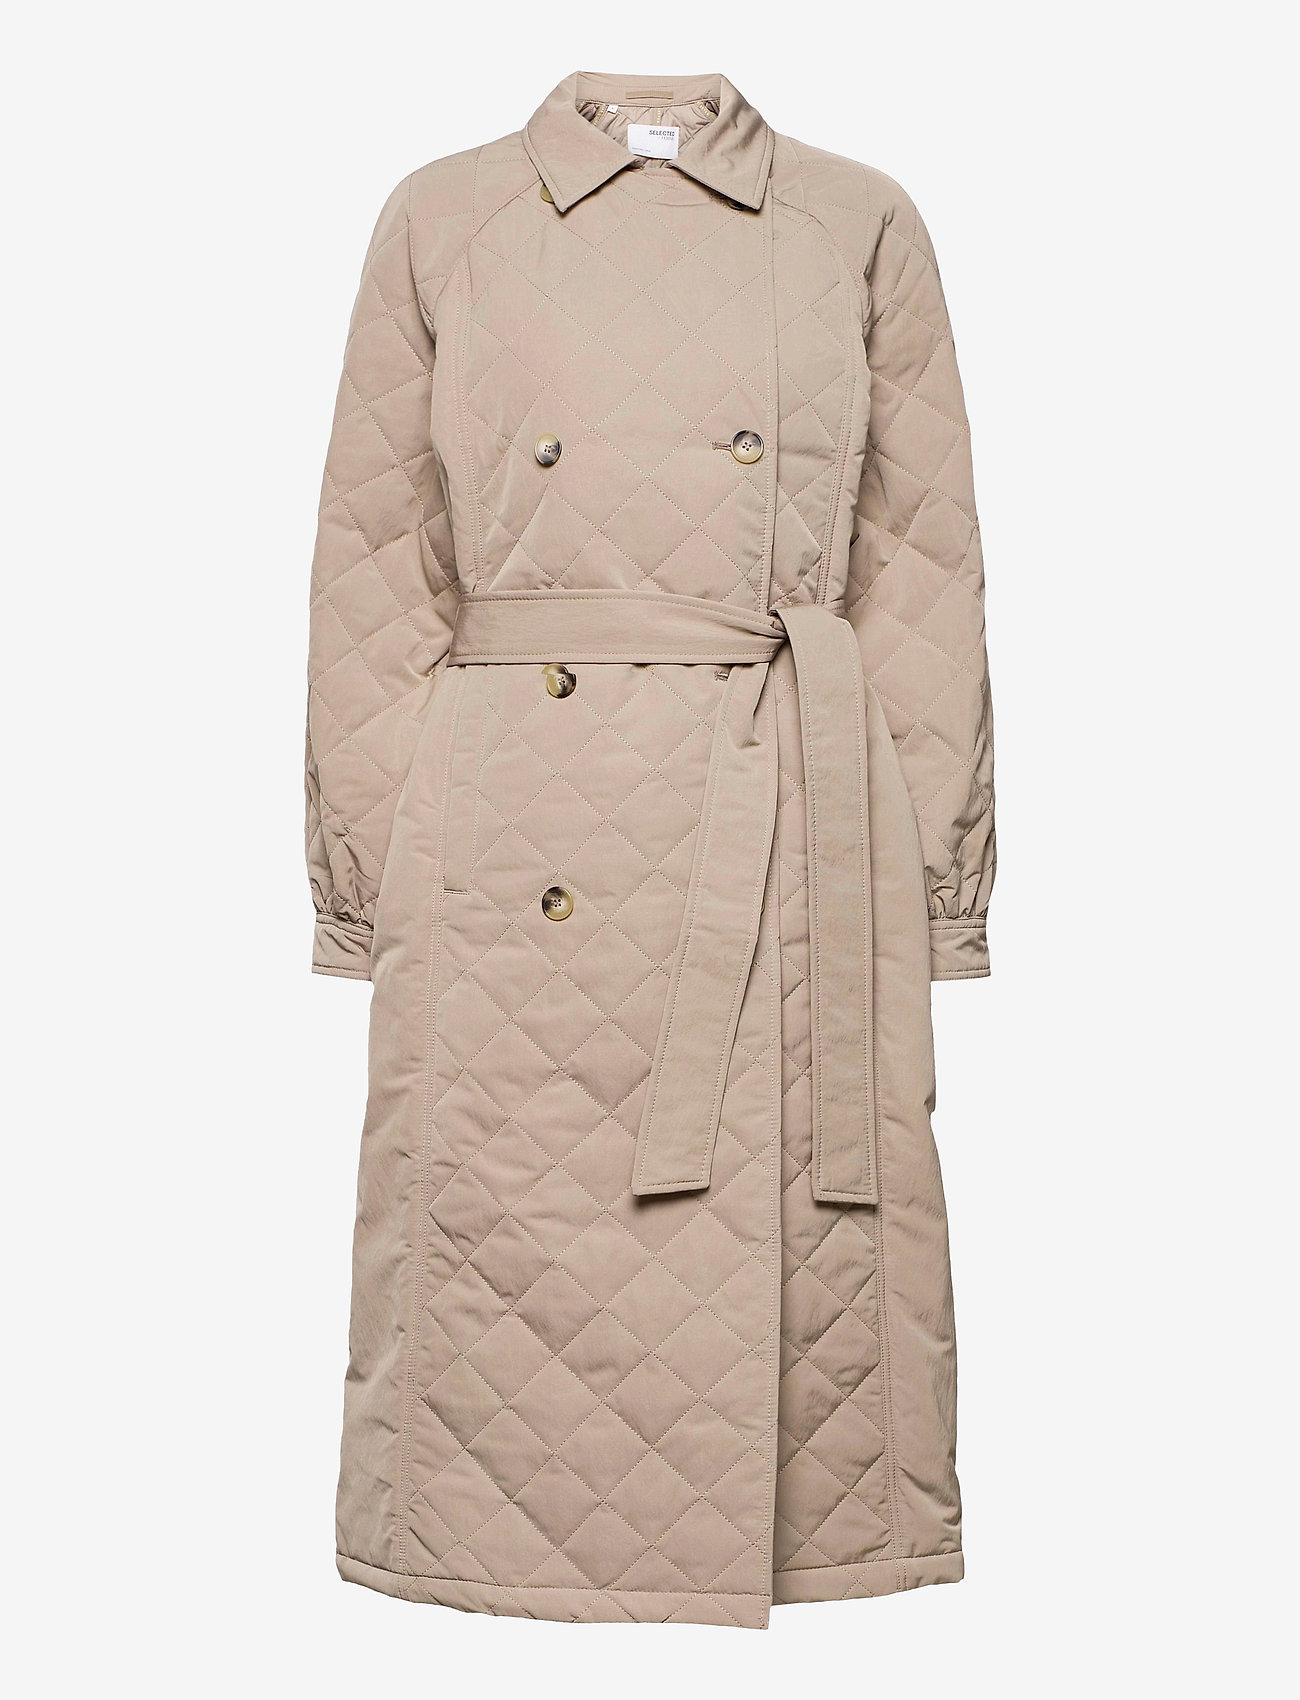 Selected Femme - SLFNINNA QUILTED TRENCHCOAT - trenchcoats - silver mink - 0